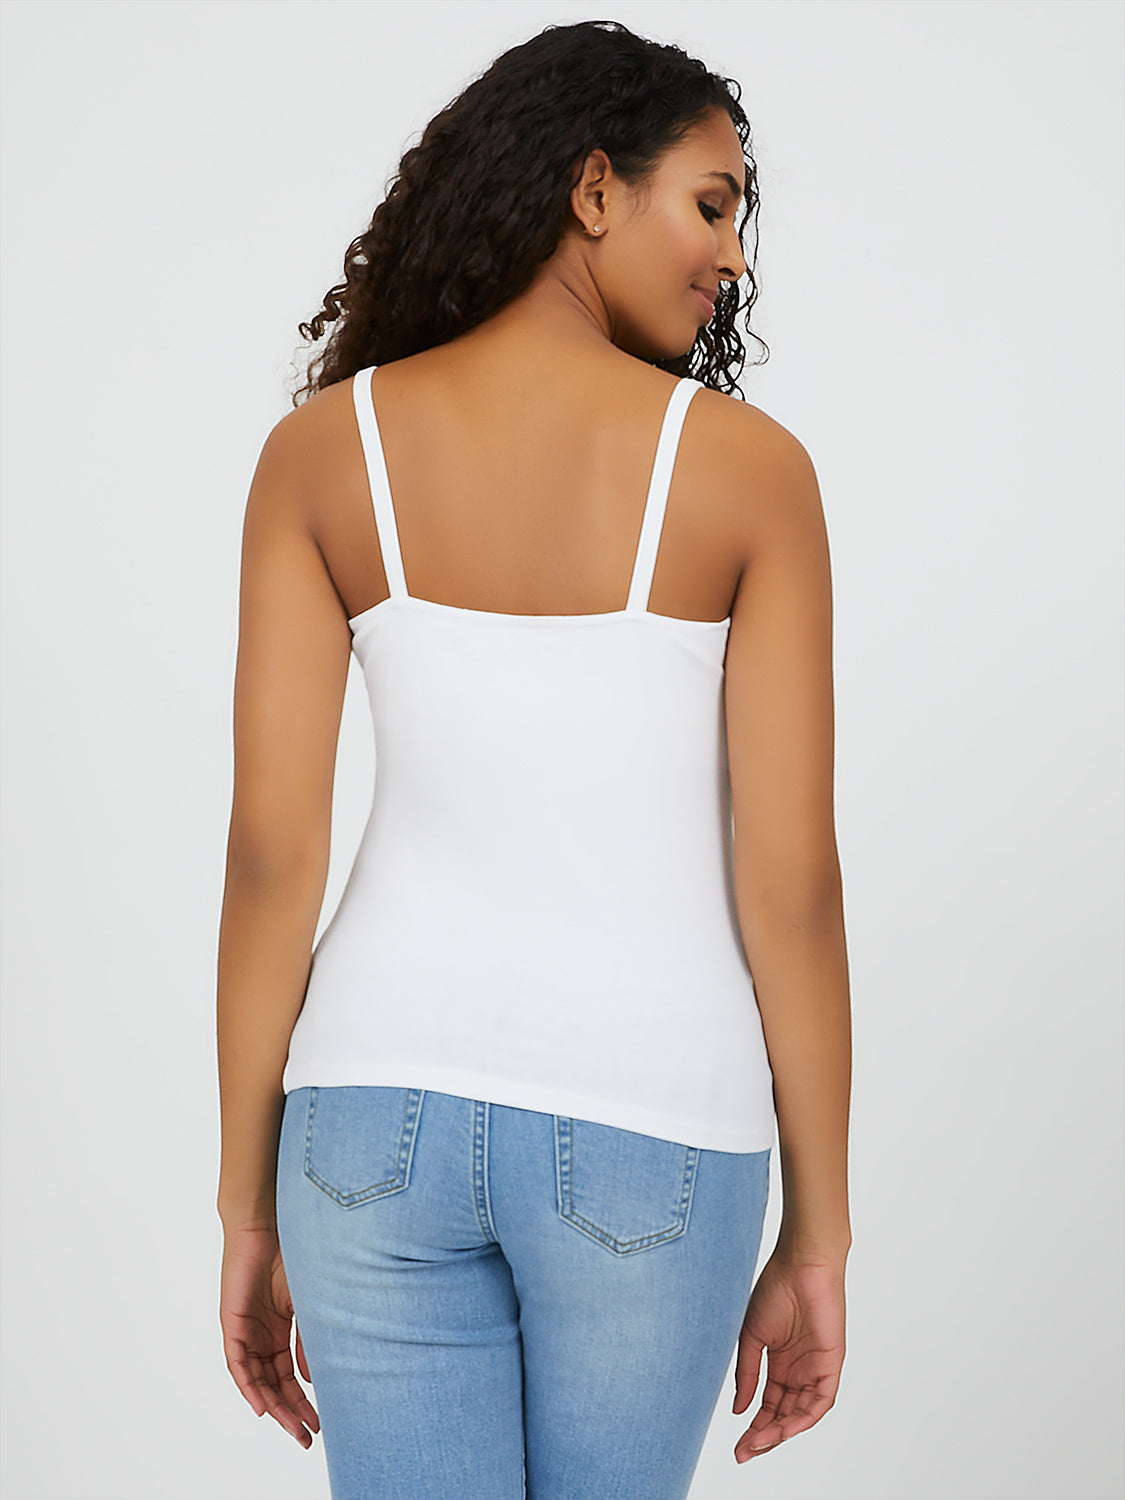 Square Neck Spaghetti Strap Tank Top